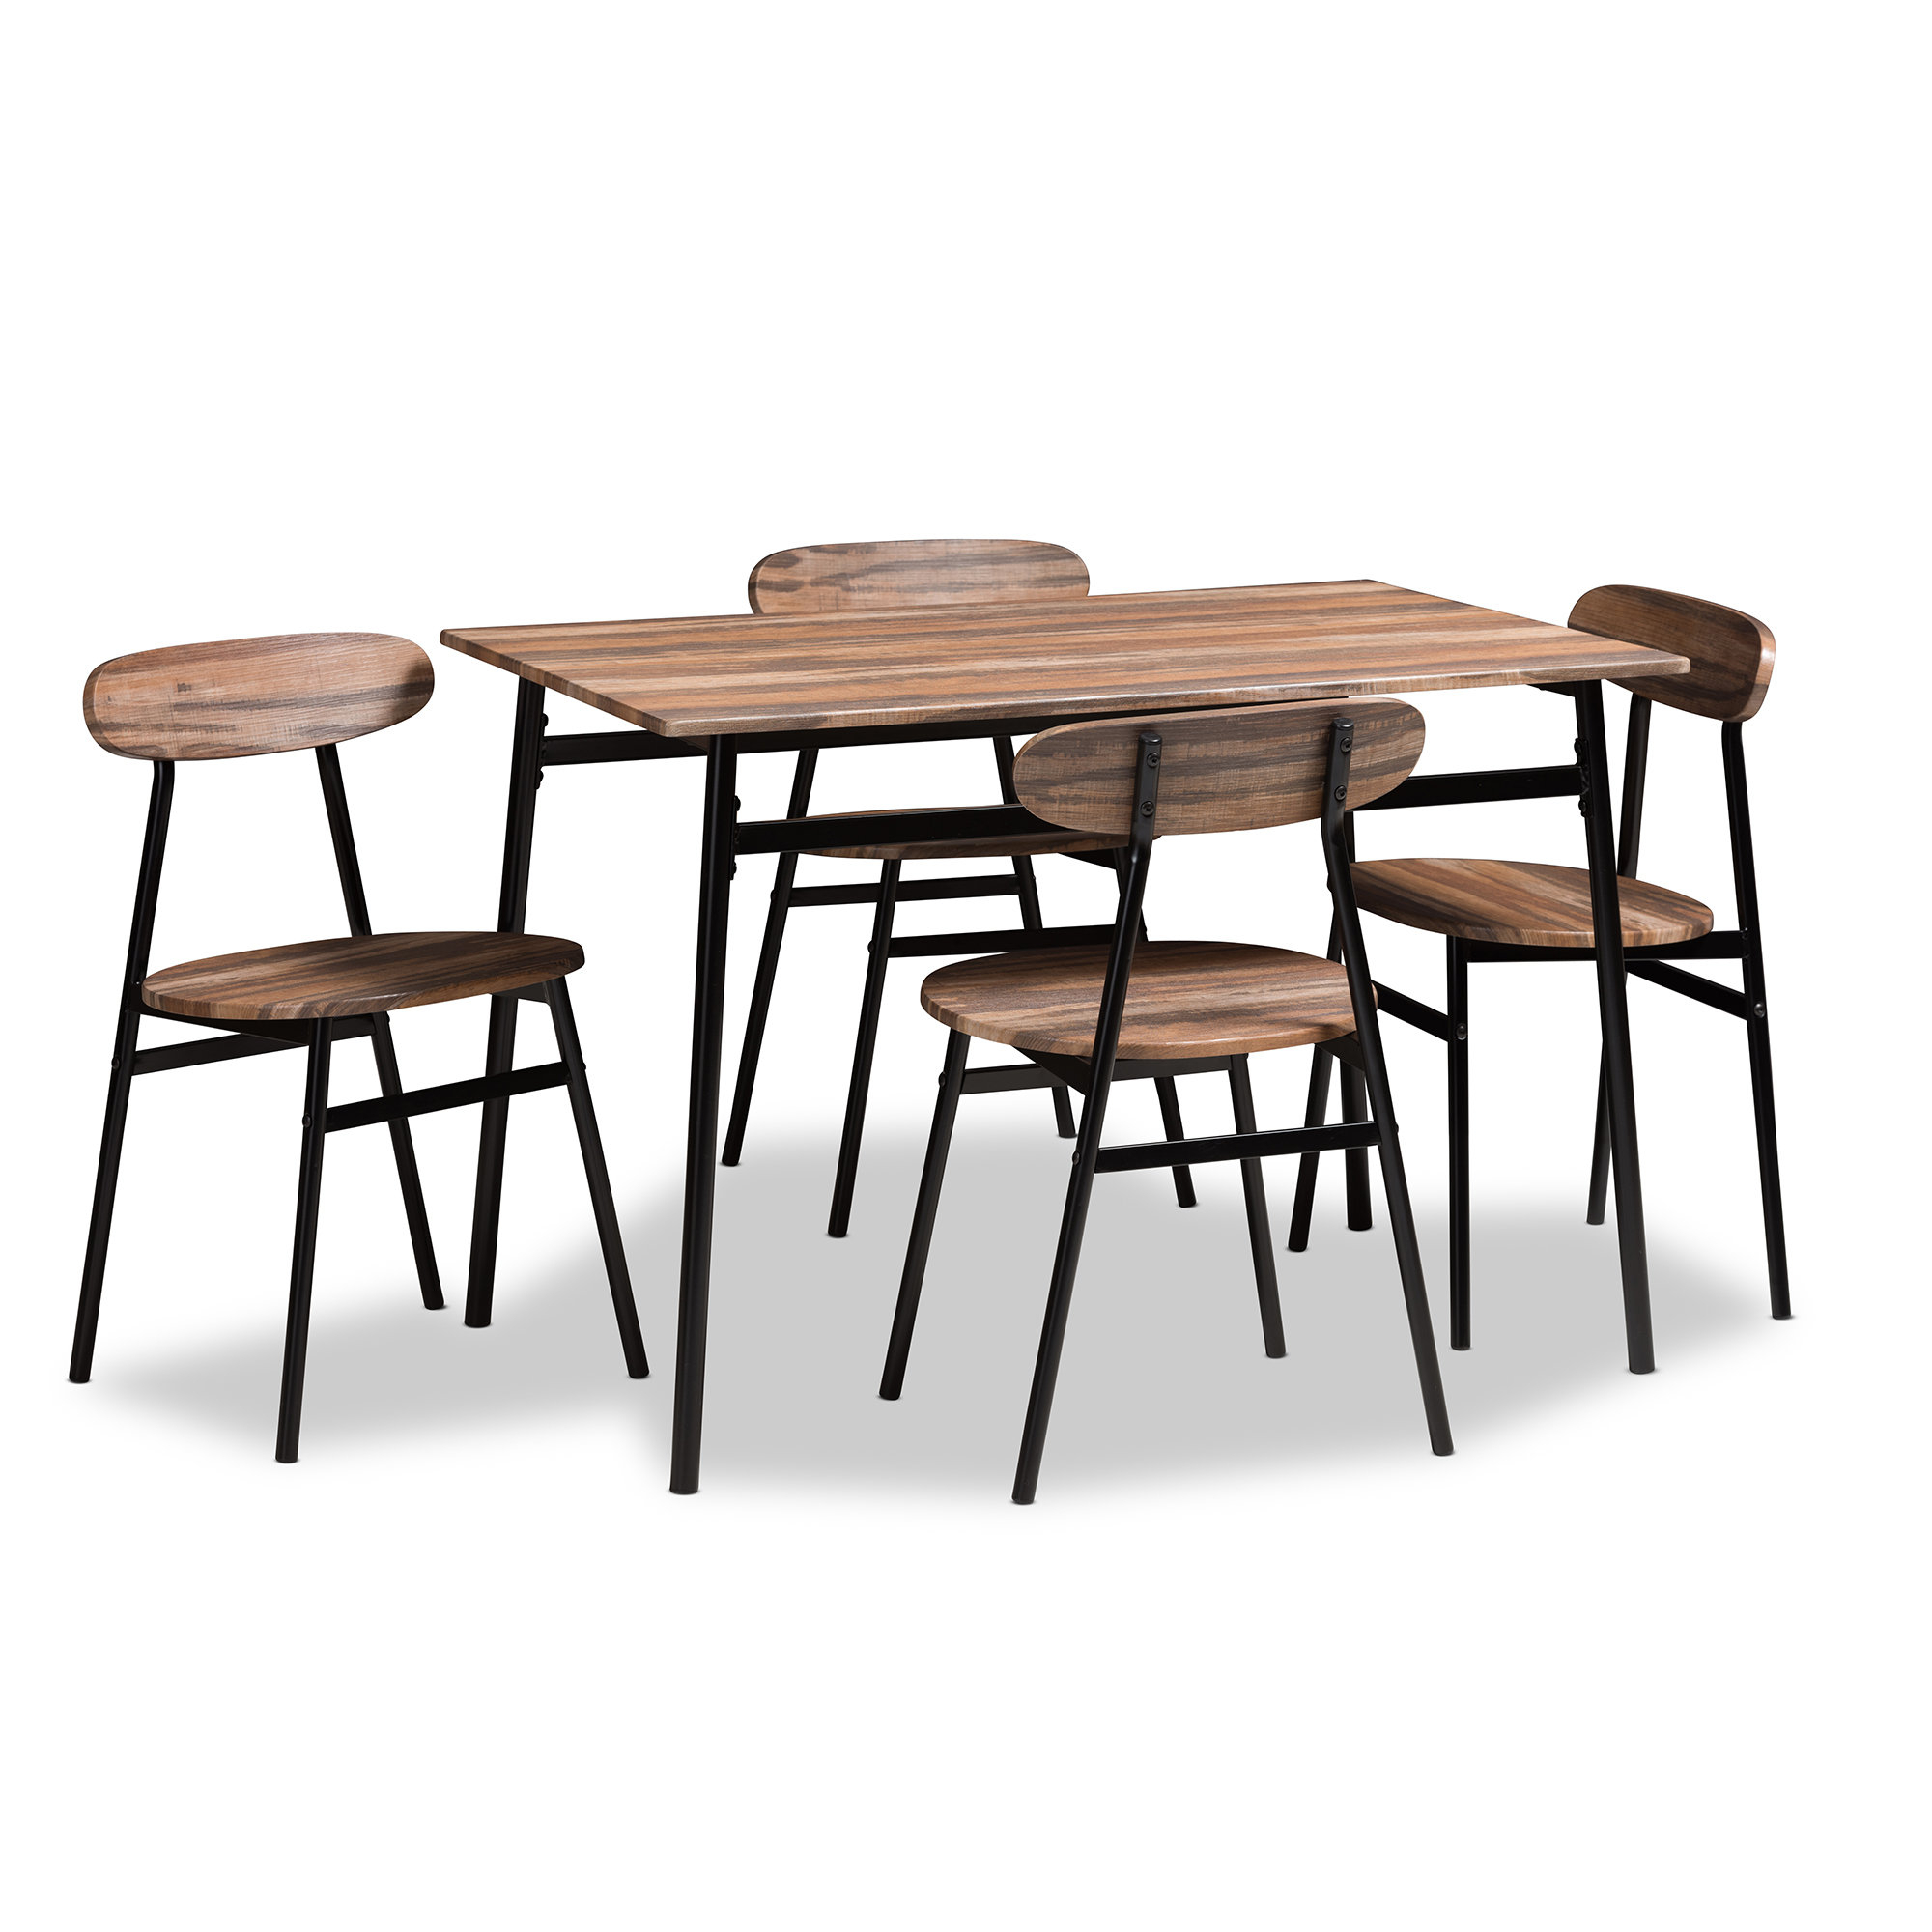 Best And Newest Telauges 5 Piece Dining Set Regarding Taulbee 5 Piece Dining Sets (View 4 of 20)